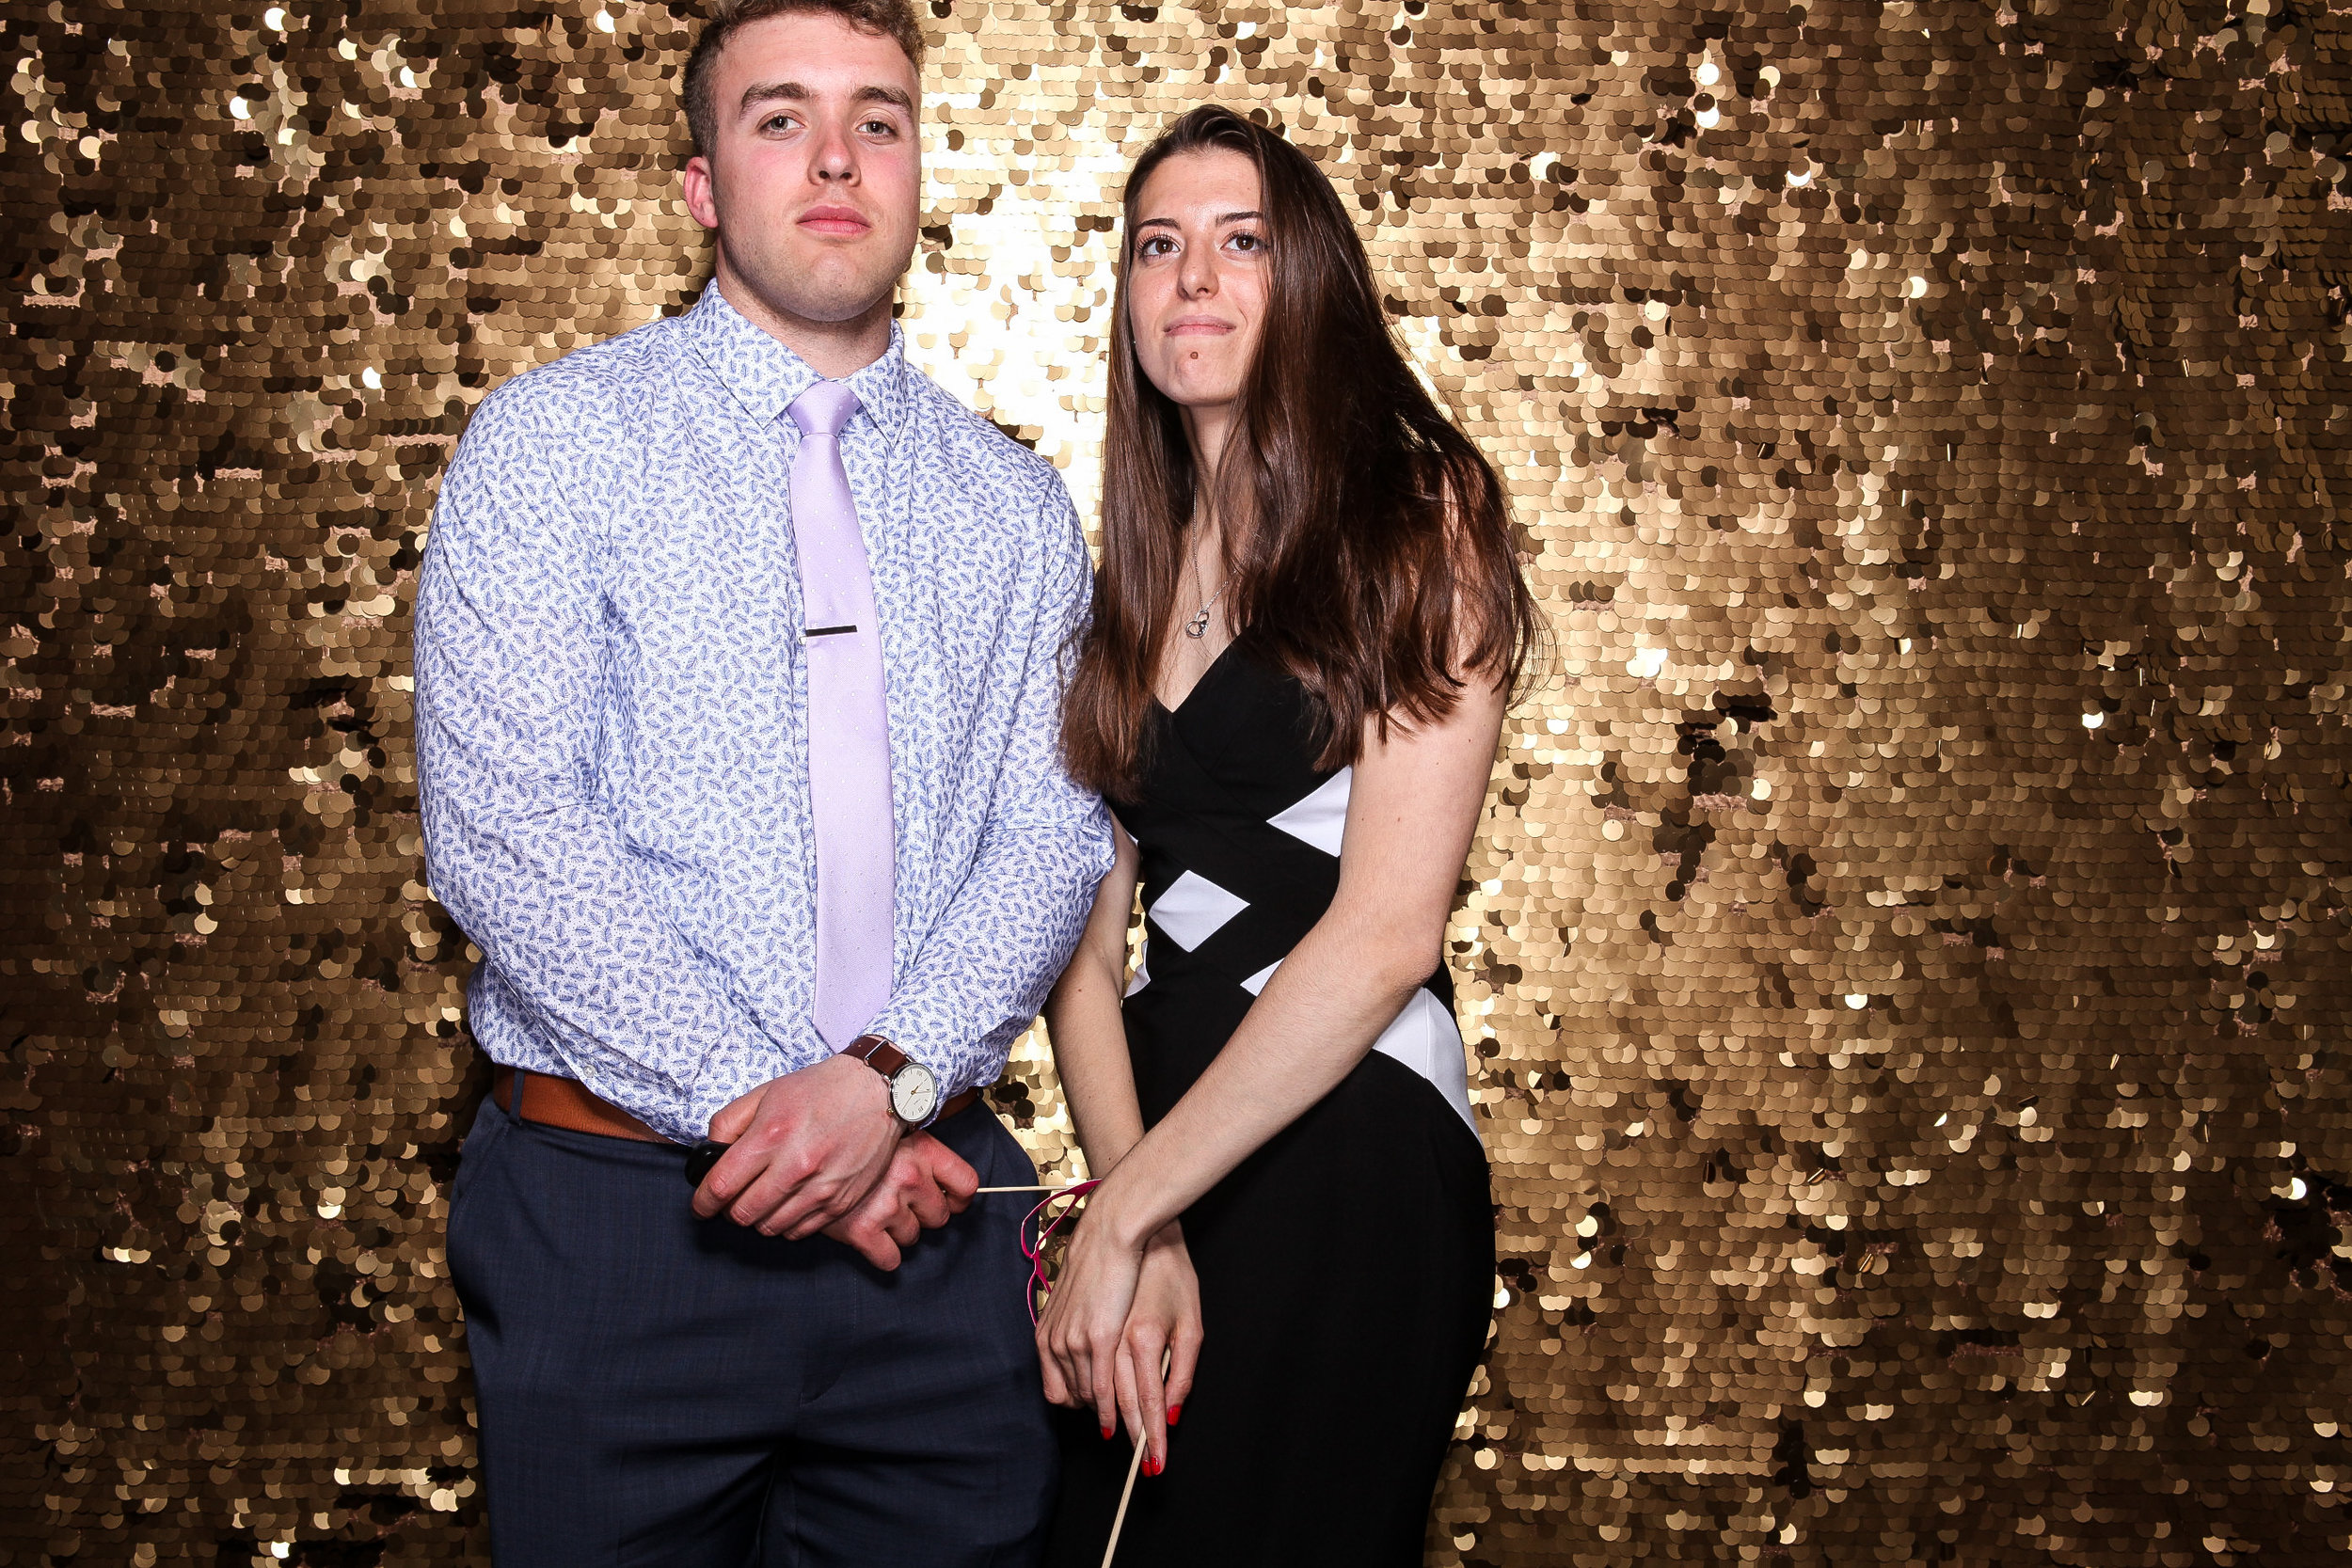 20190503_Adelphi_Senior_Formal-246.jpg